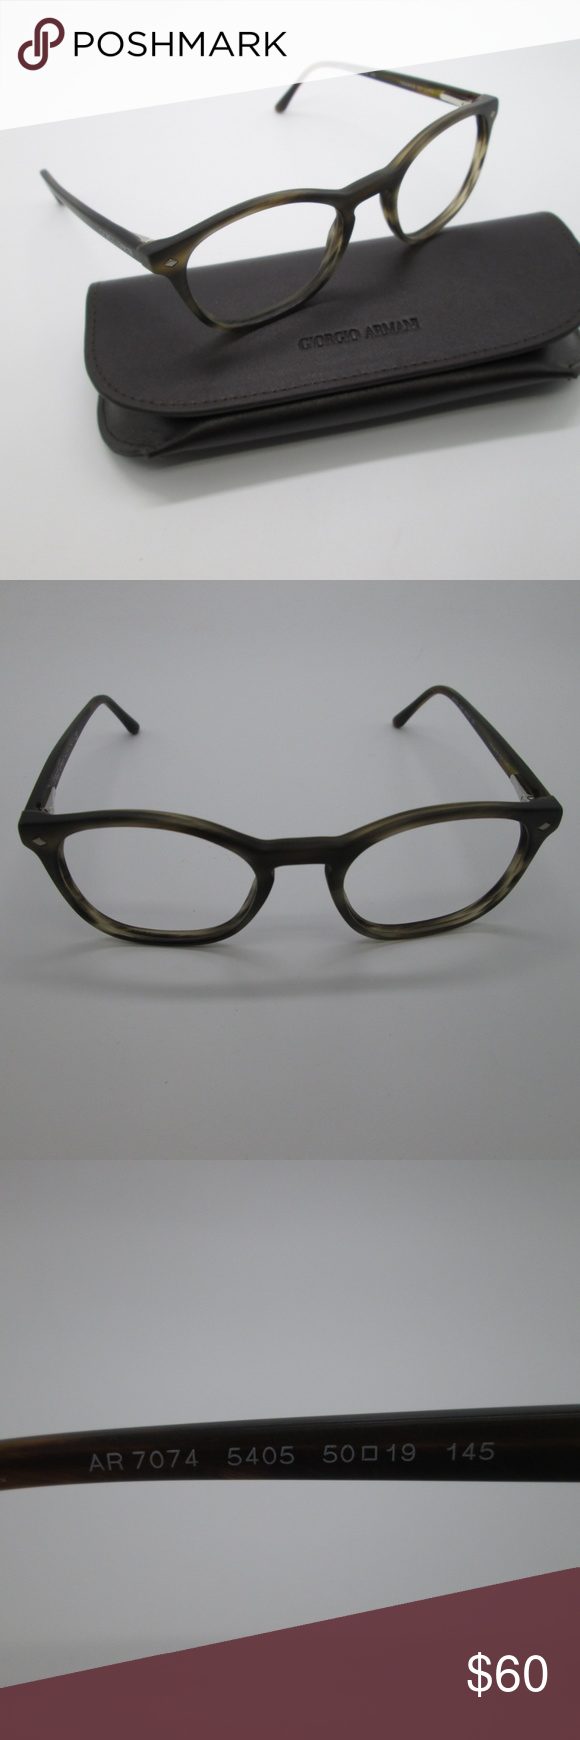 9c6d33b7f305 Giorgio Armani AR7074 5405 Men s Eyeglasses DAE214 Giorgio Armani AR7074  5405 Men s Eyeglasses DAE214 Frame and temples in Excellent condition. Frame  only.